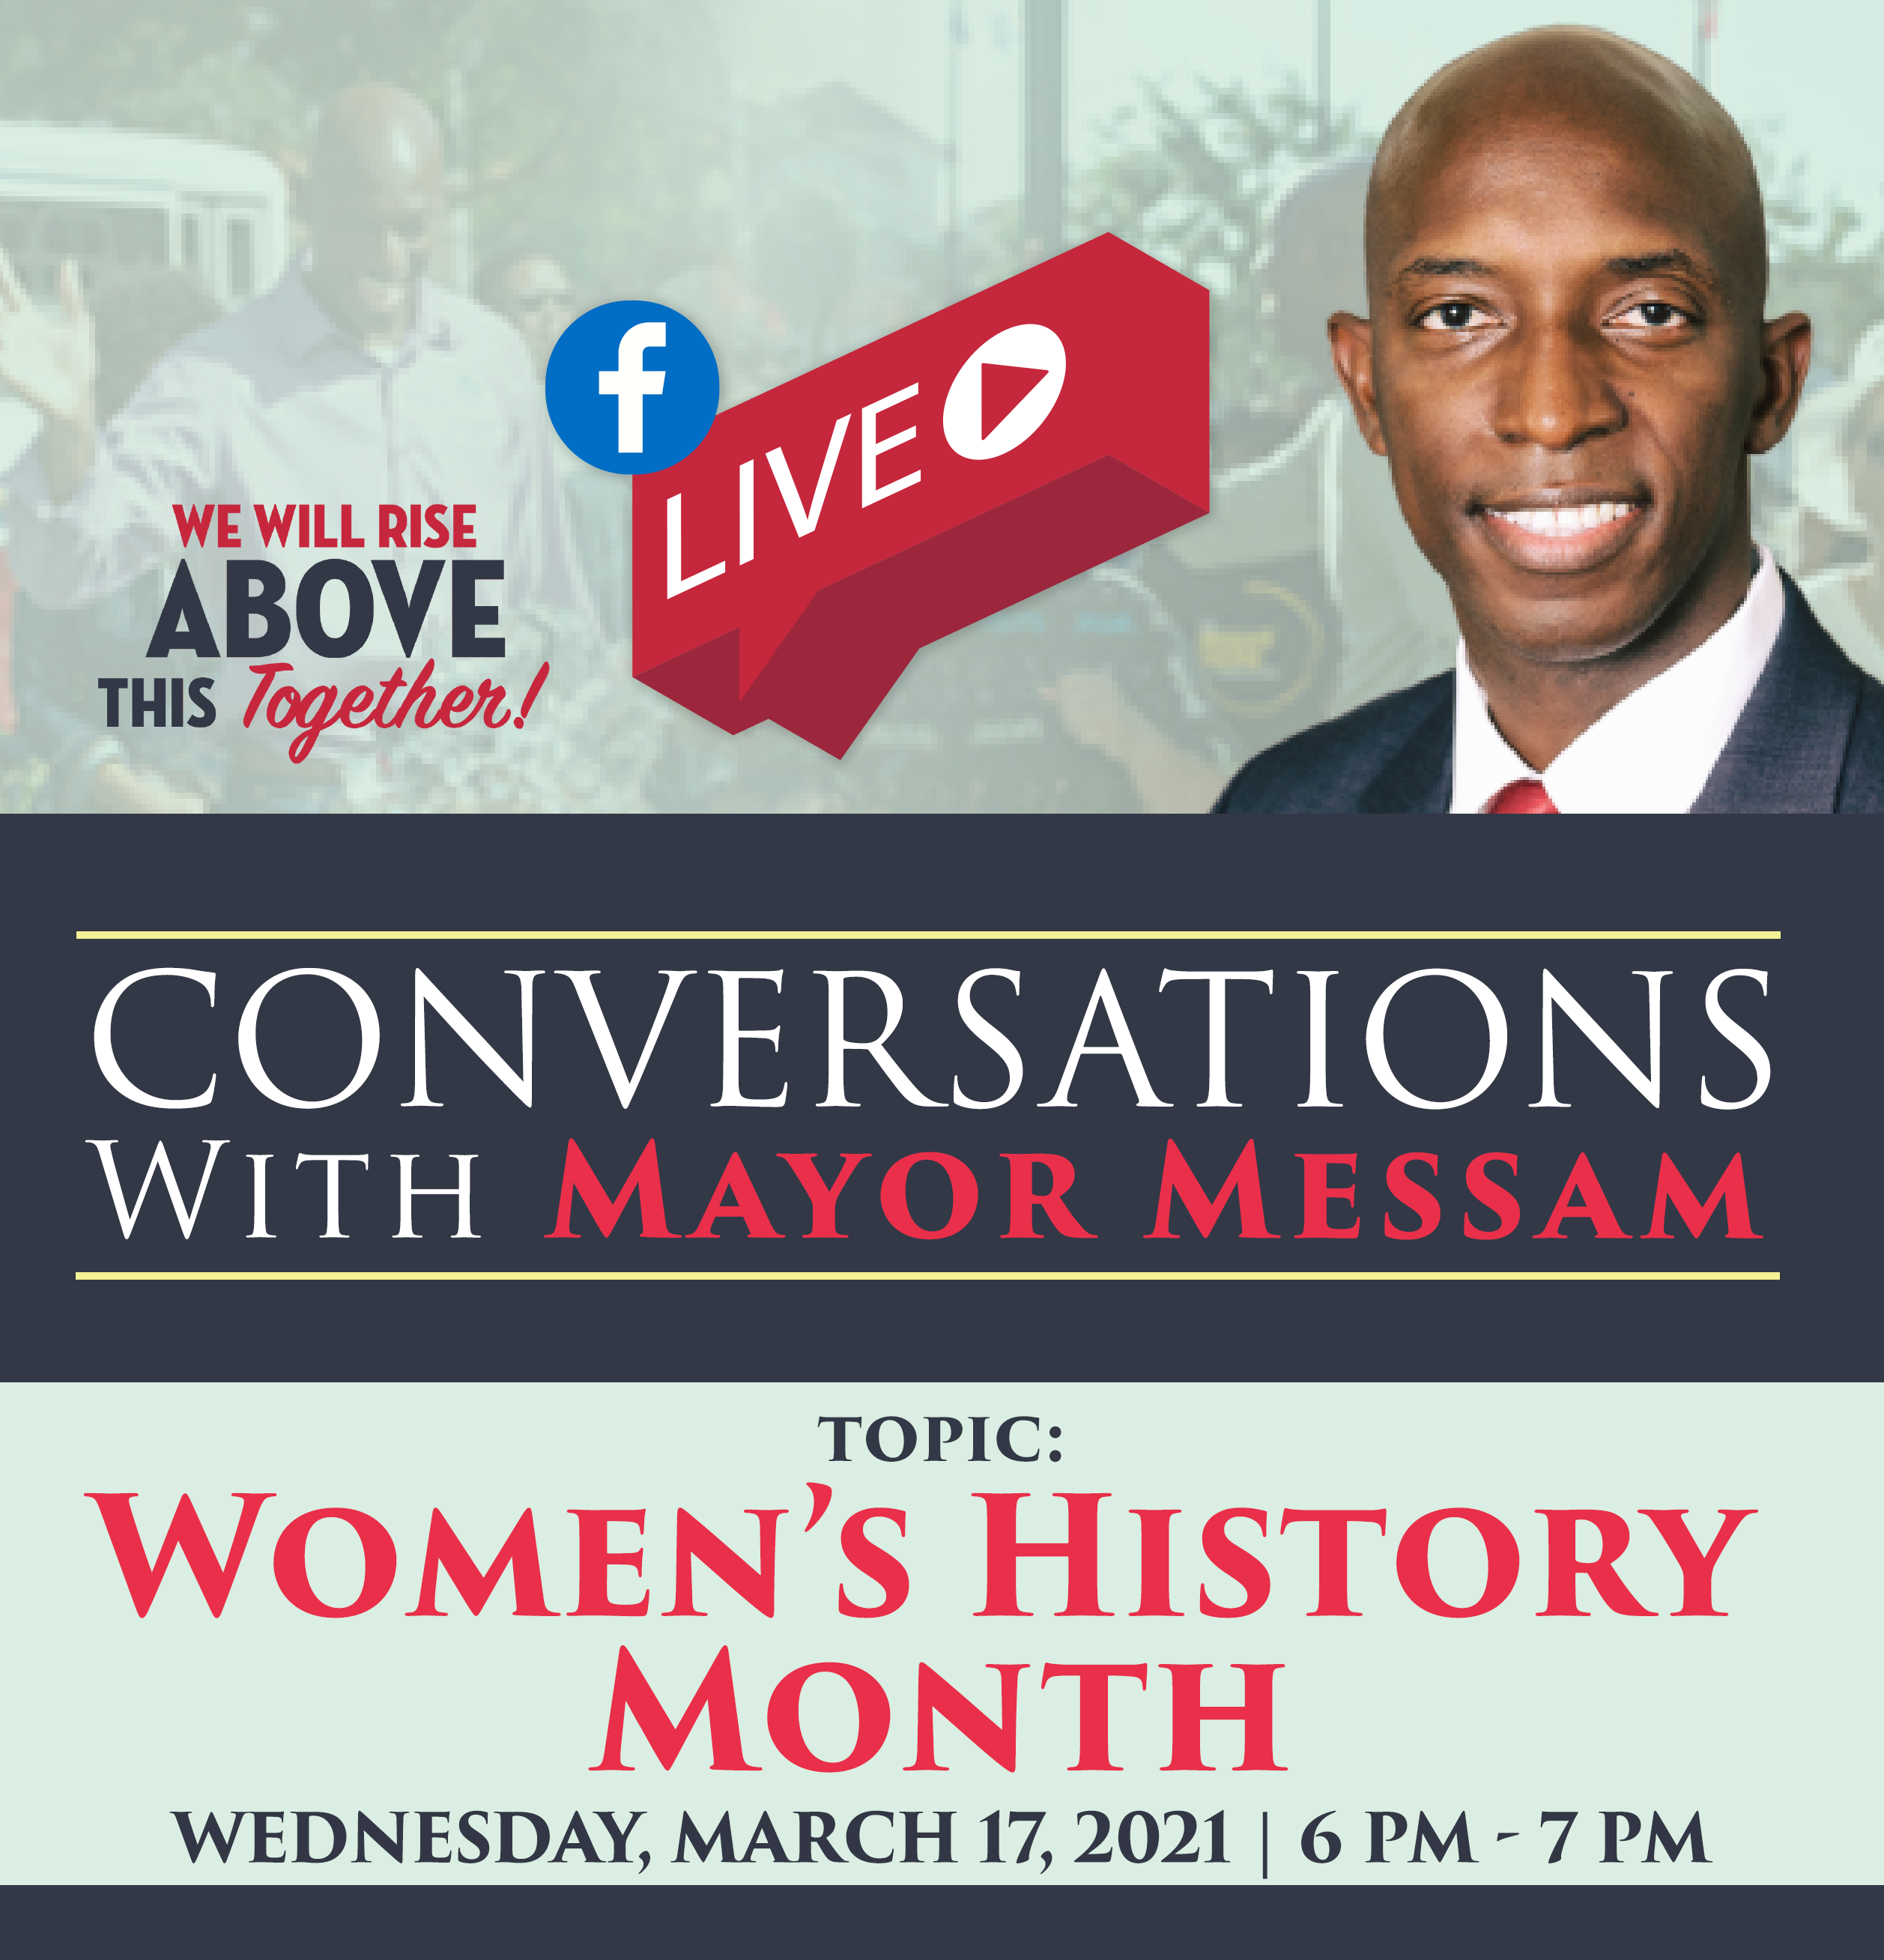 Conversations with Mayor Messam